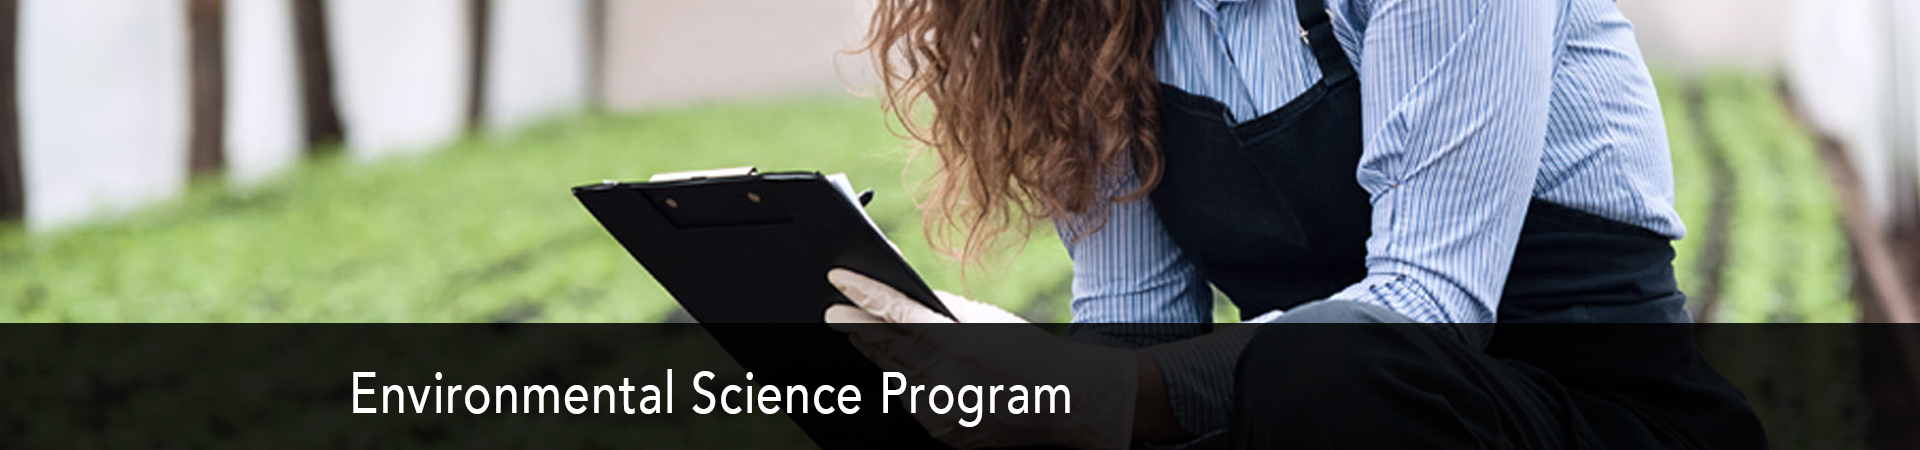 Explore the Environmental Science Program at NC